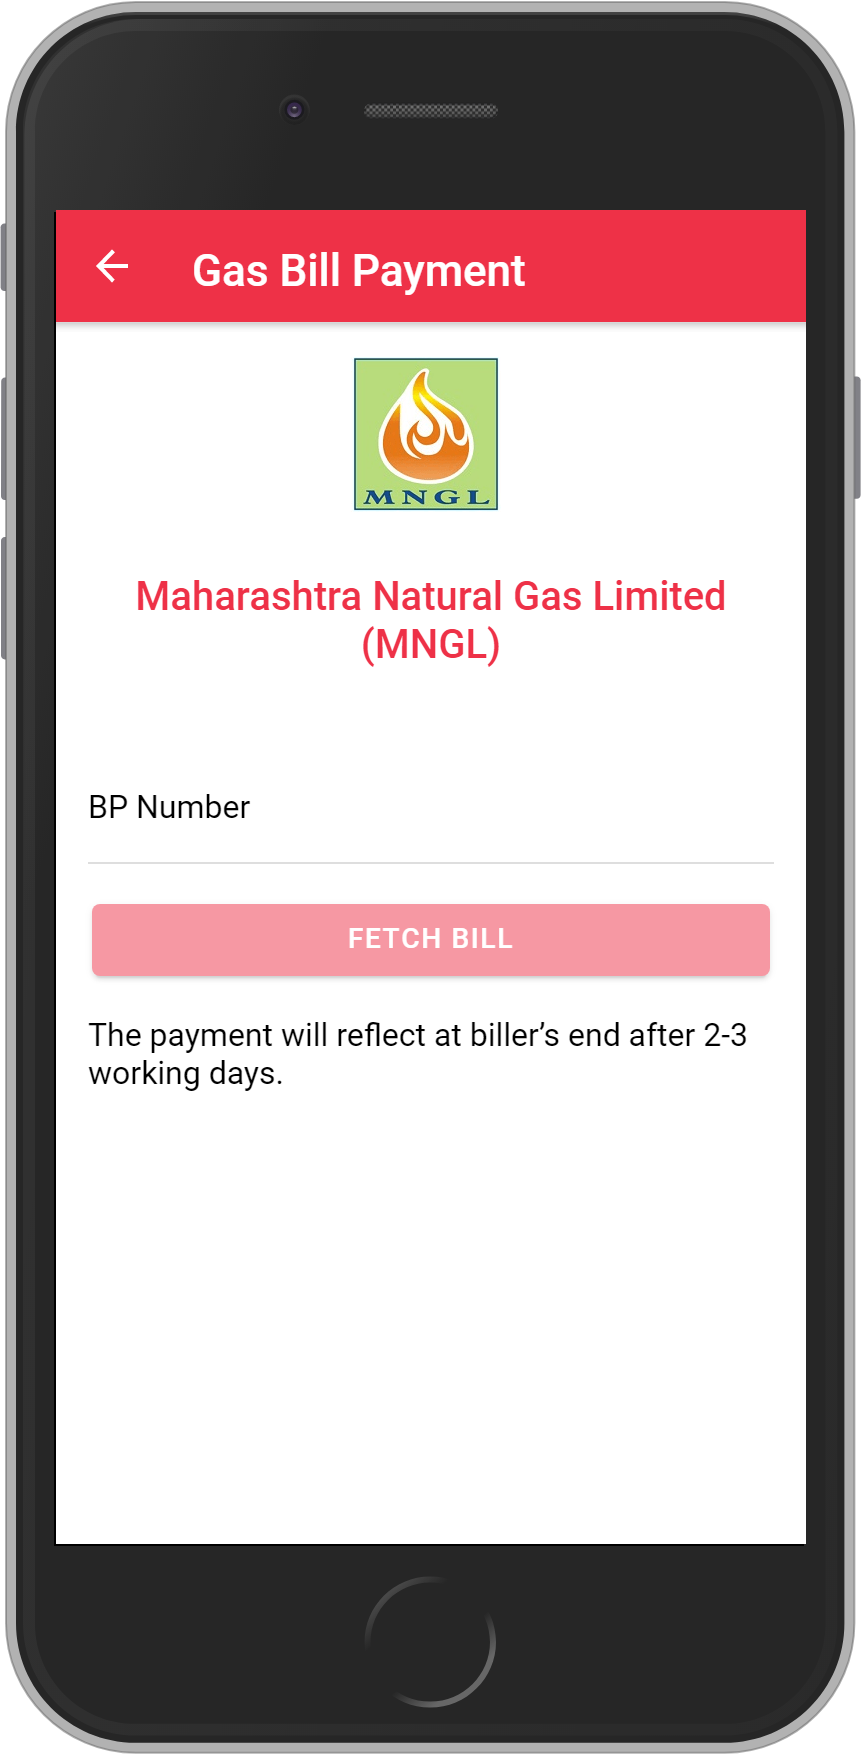 Get UNLIMITED <b>0.1%</b> CASHBACK on Maharashtra Natural Gas Limited (MNGL) Bill Payment.